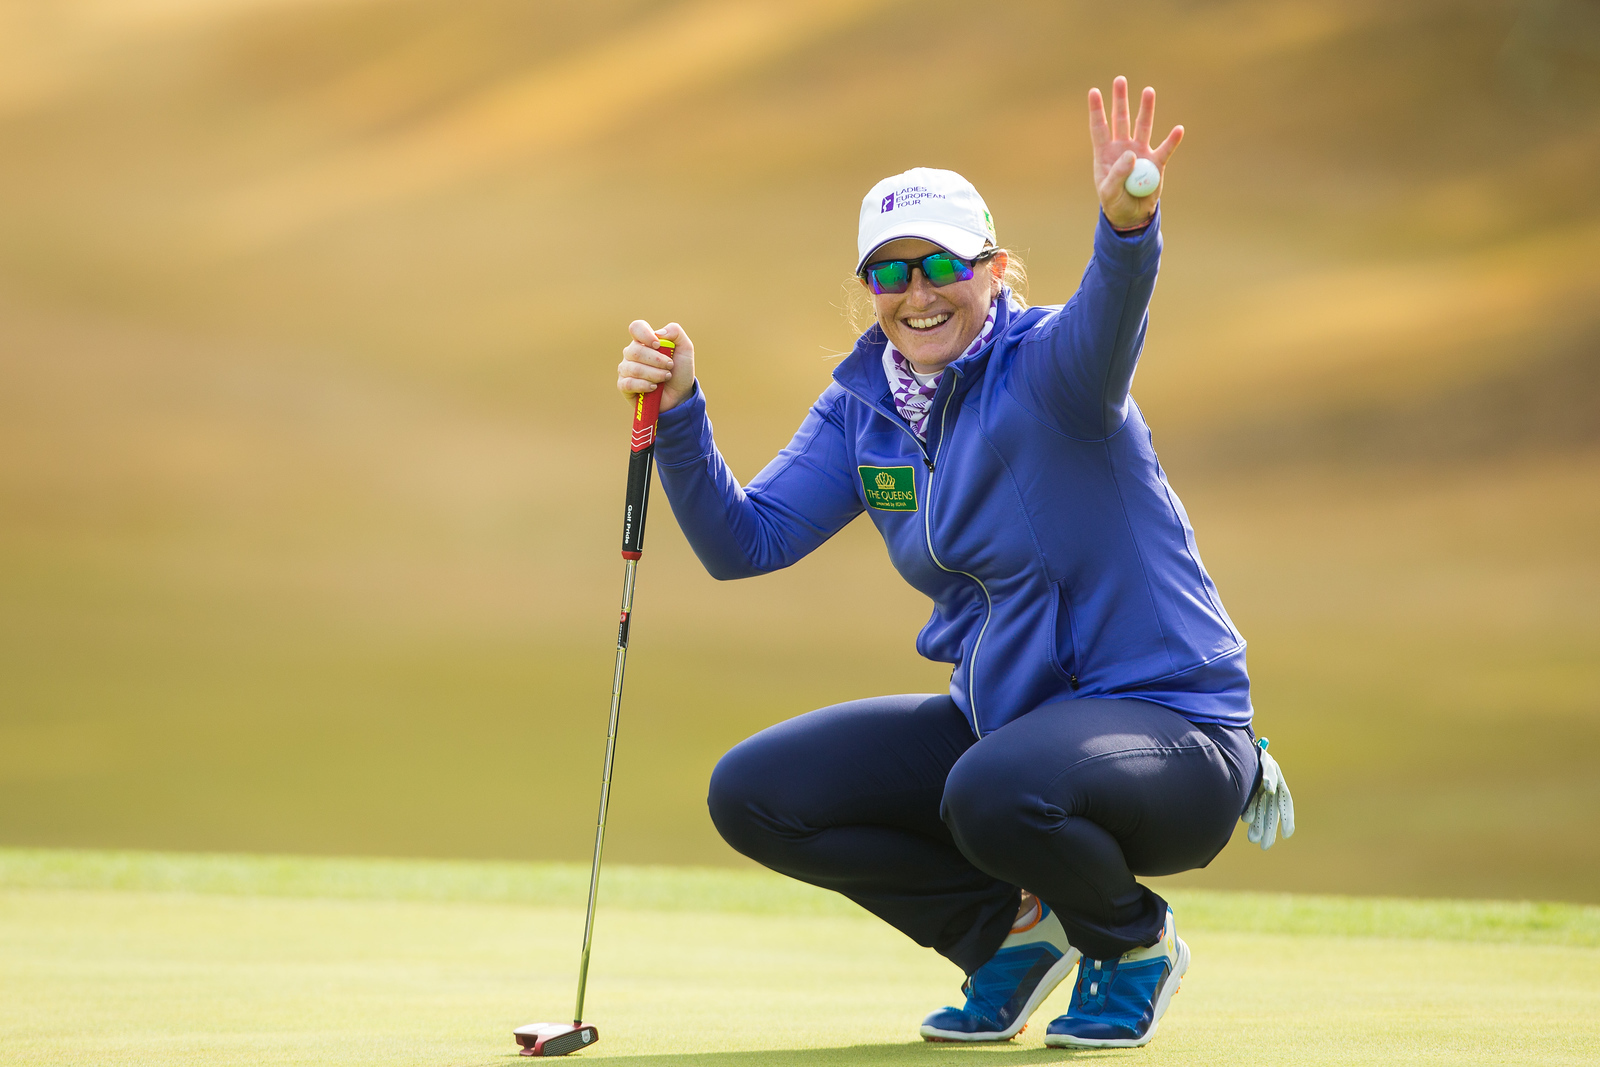 Holly Clyburn of England during the pro-am